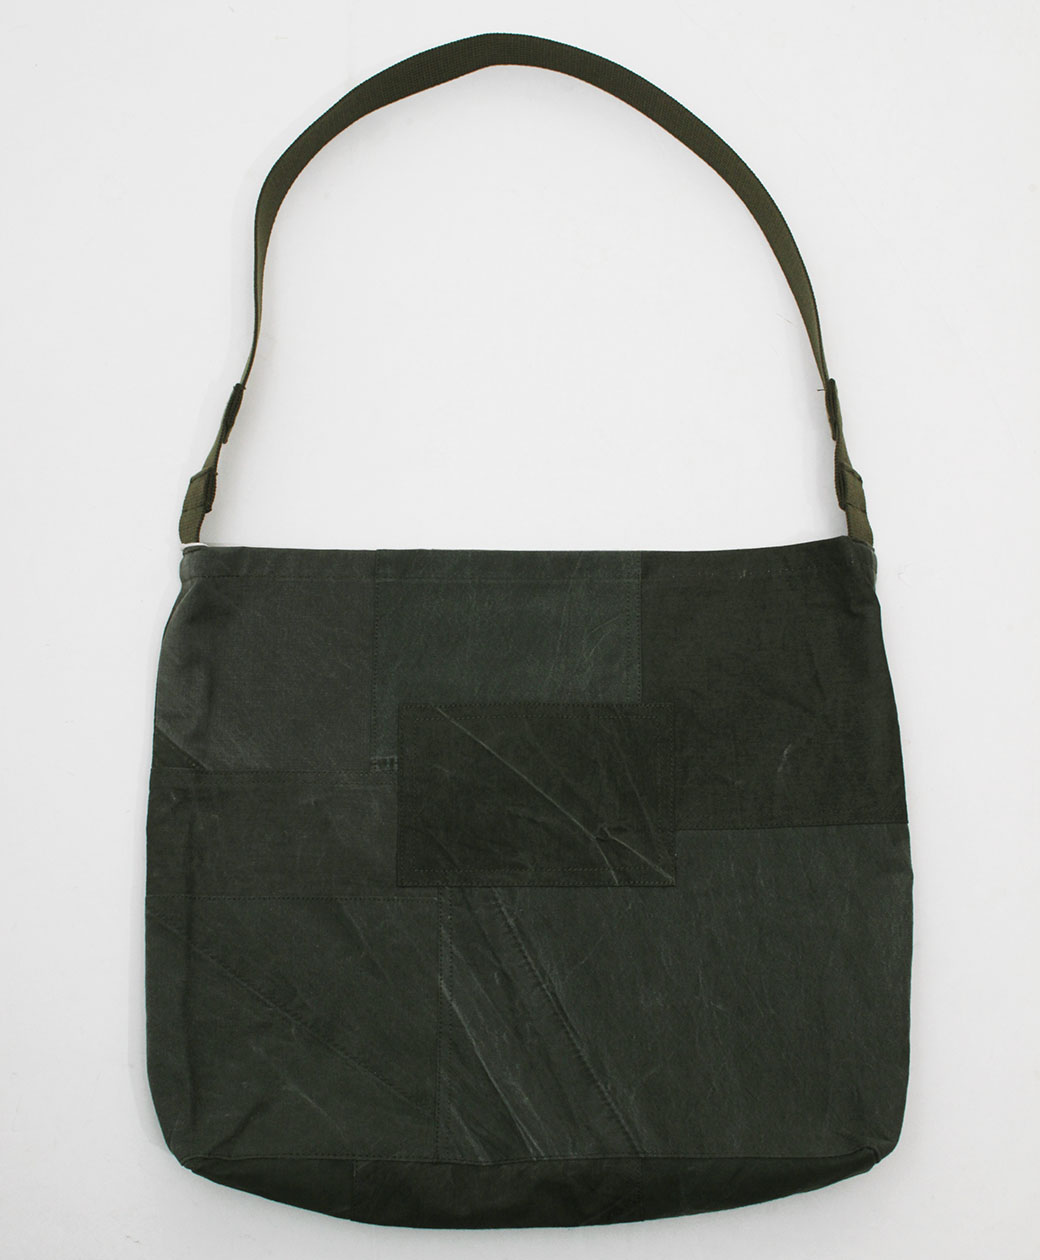 hobo COTTON US ARMY CLOTH PATCHWORK SHOULDER BAG(OLIVE)